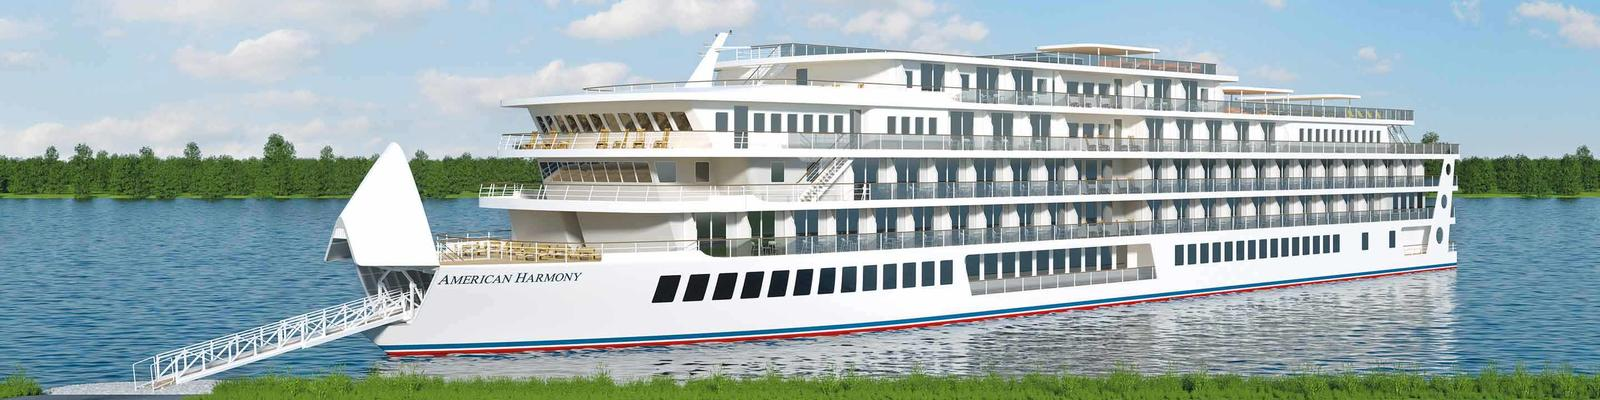 Rendering of American Harmony docked in port with gangway protruding from the front of the ship